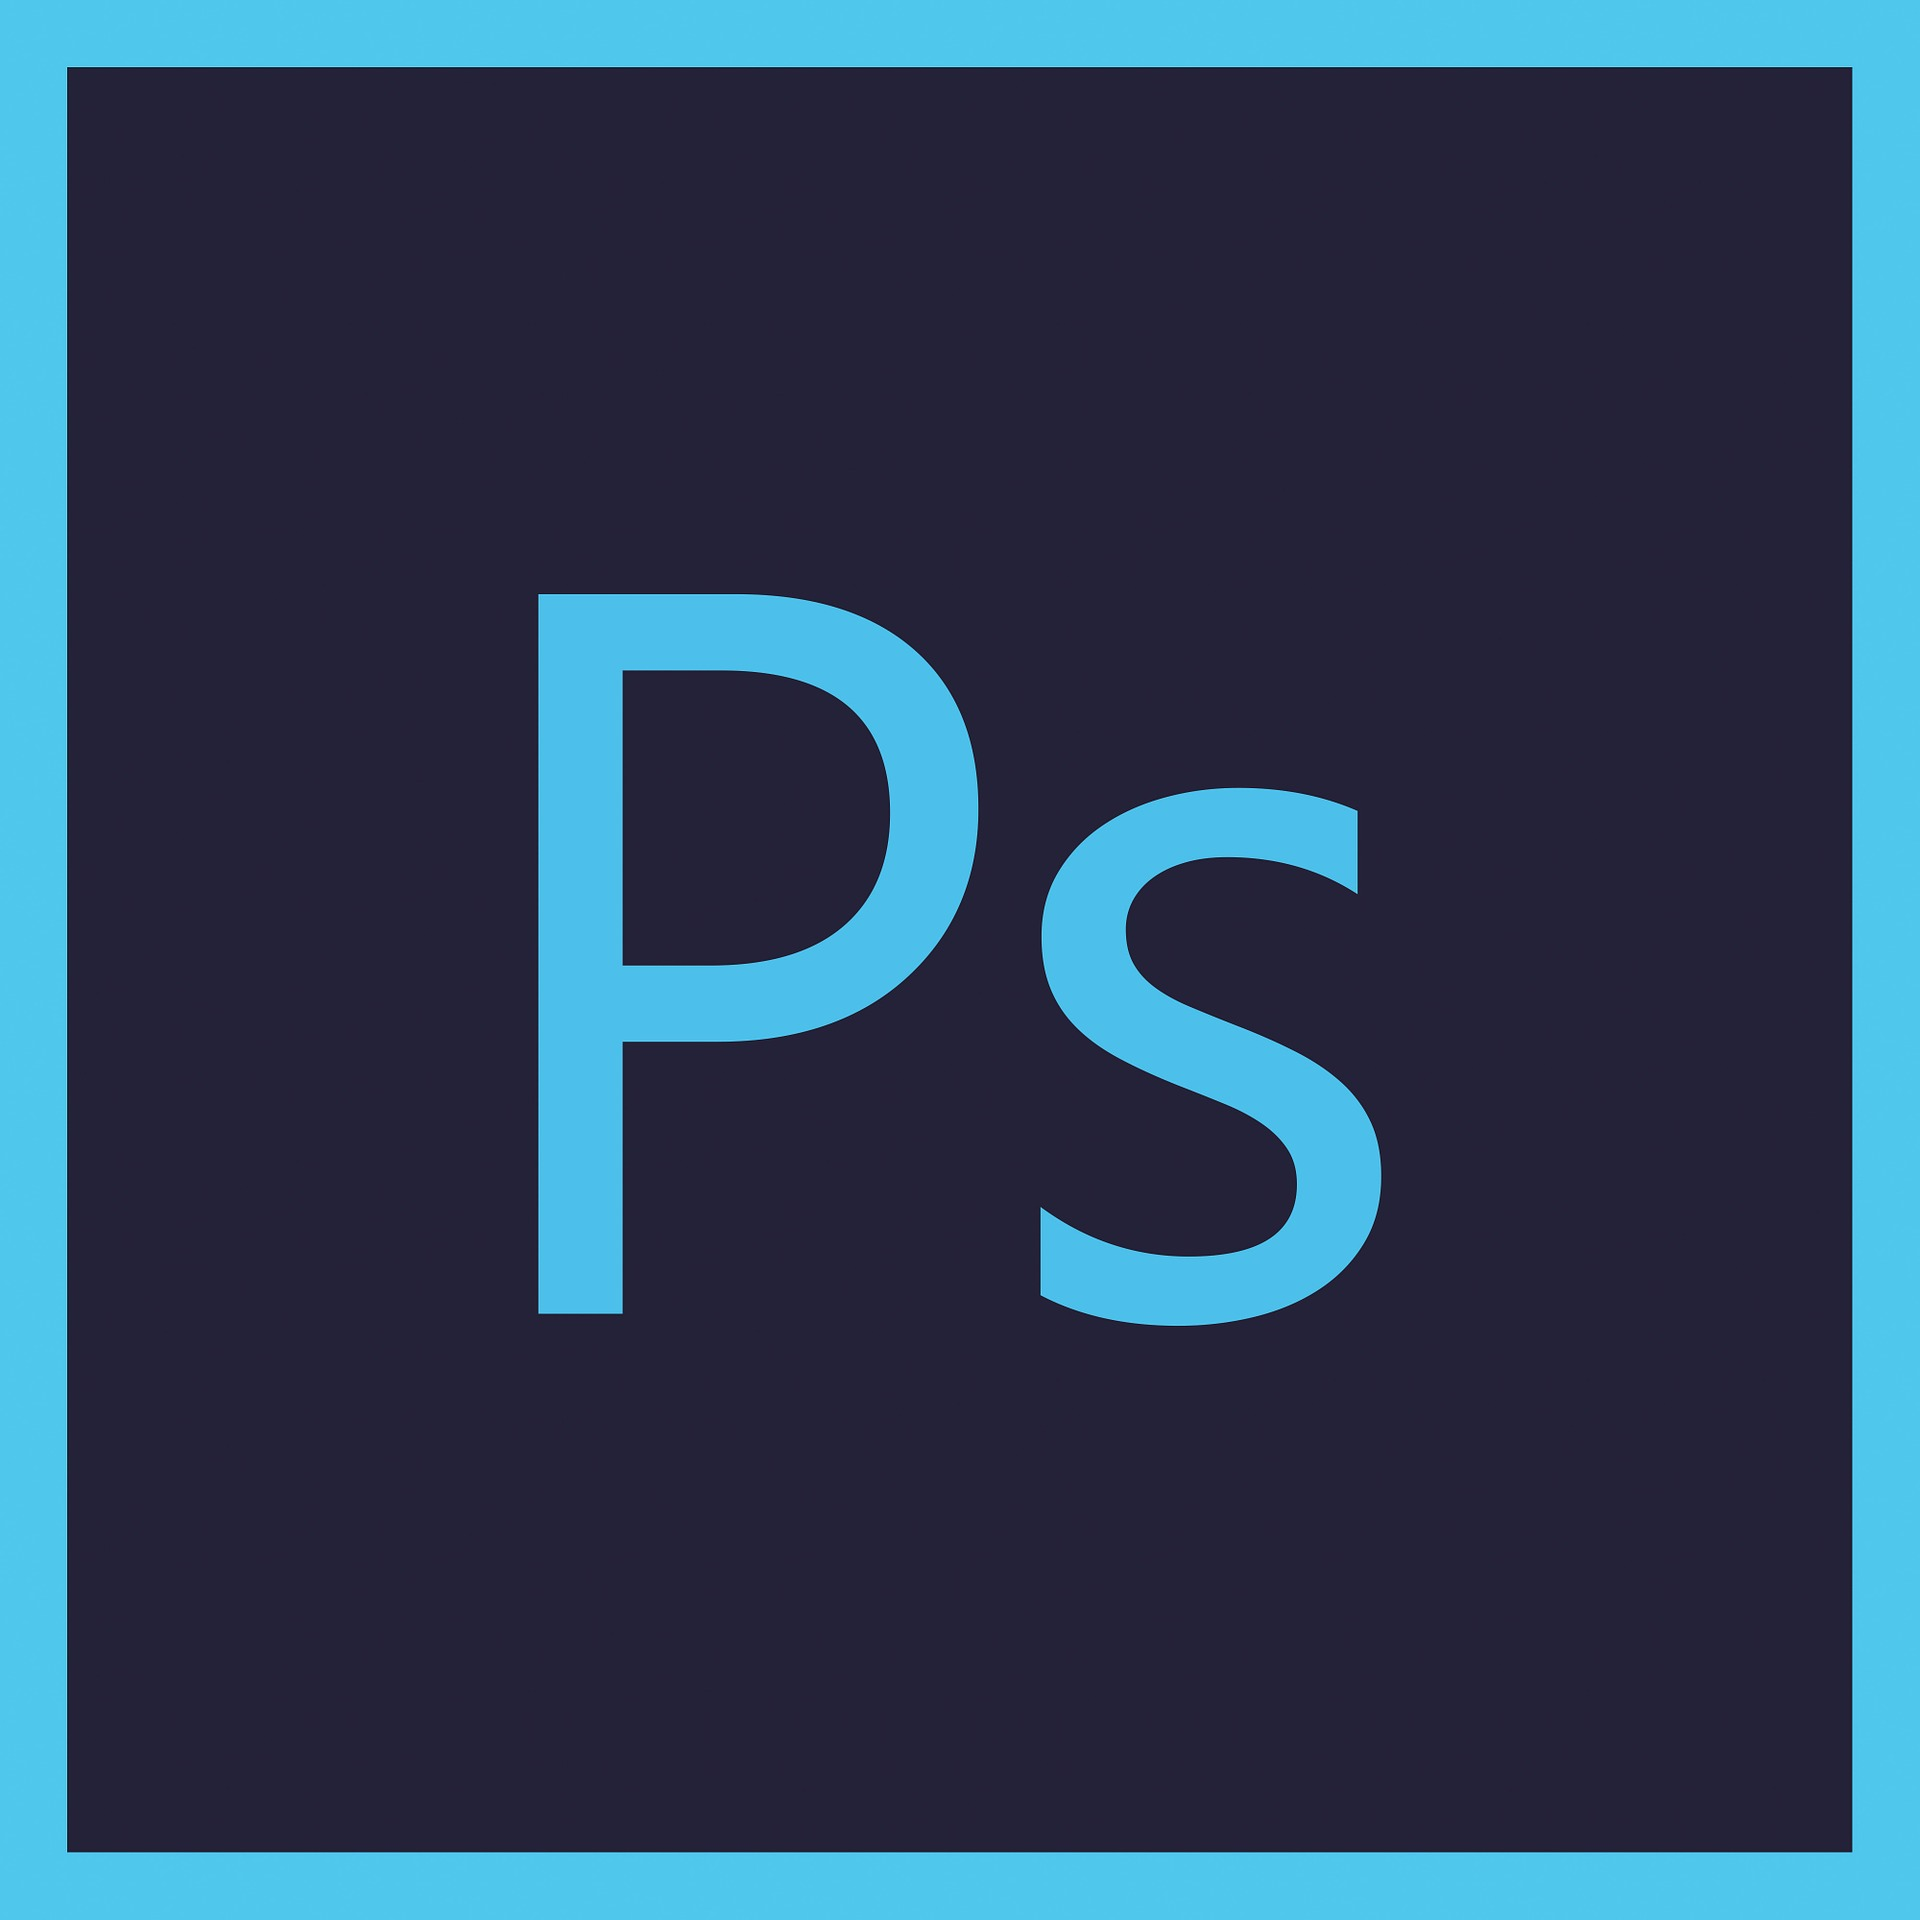 WHAT IS PHOTOSHOP AND HOW TO RUN IT? KNOW FULL INFORMATION.